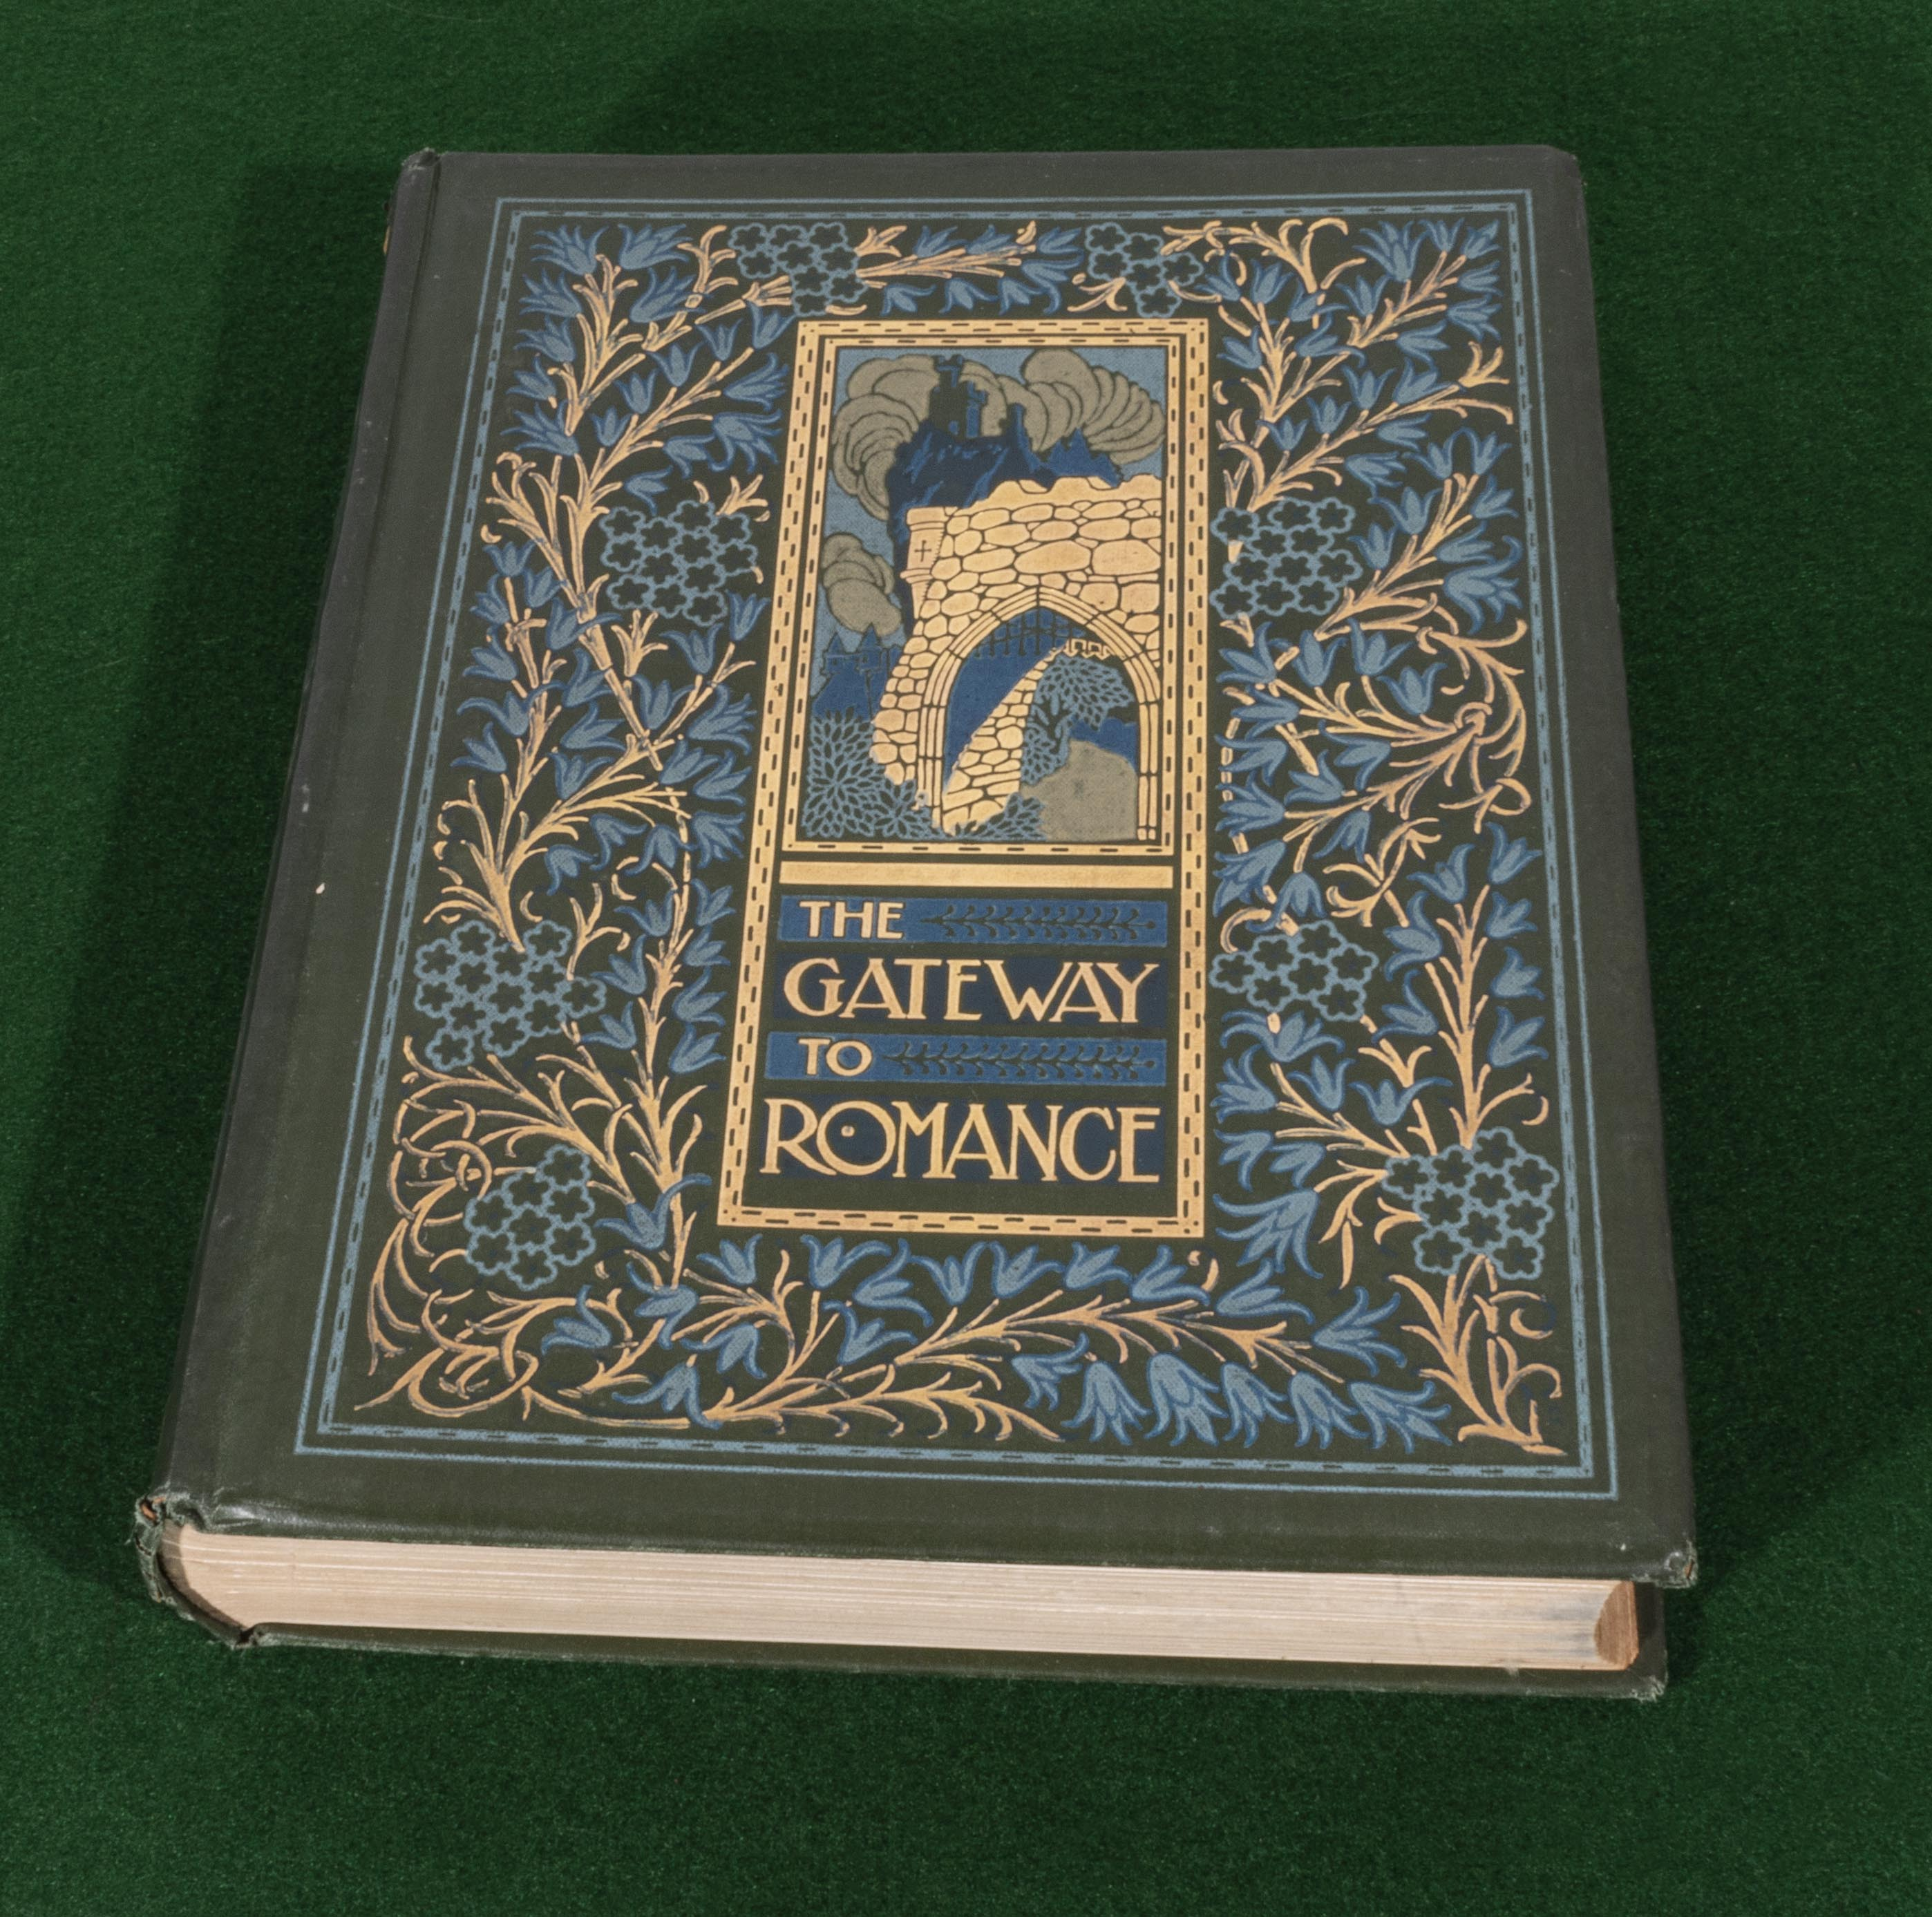 Lot 58 - An edition of 'The Gateway to Romance' tales retold by Emily Underdown from 'The Earthly Paradise'